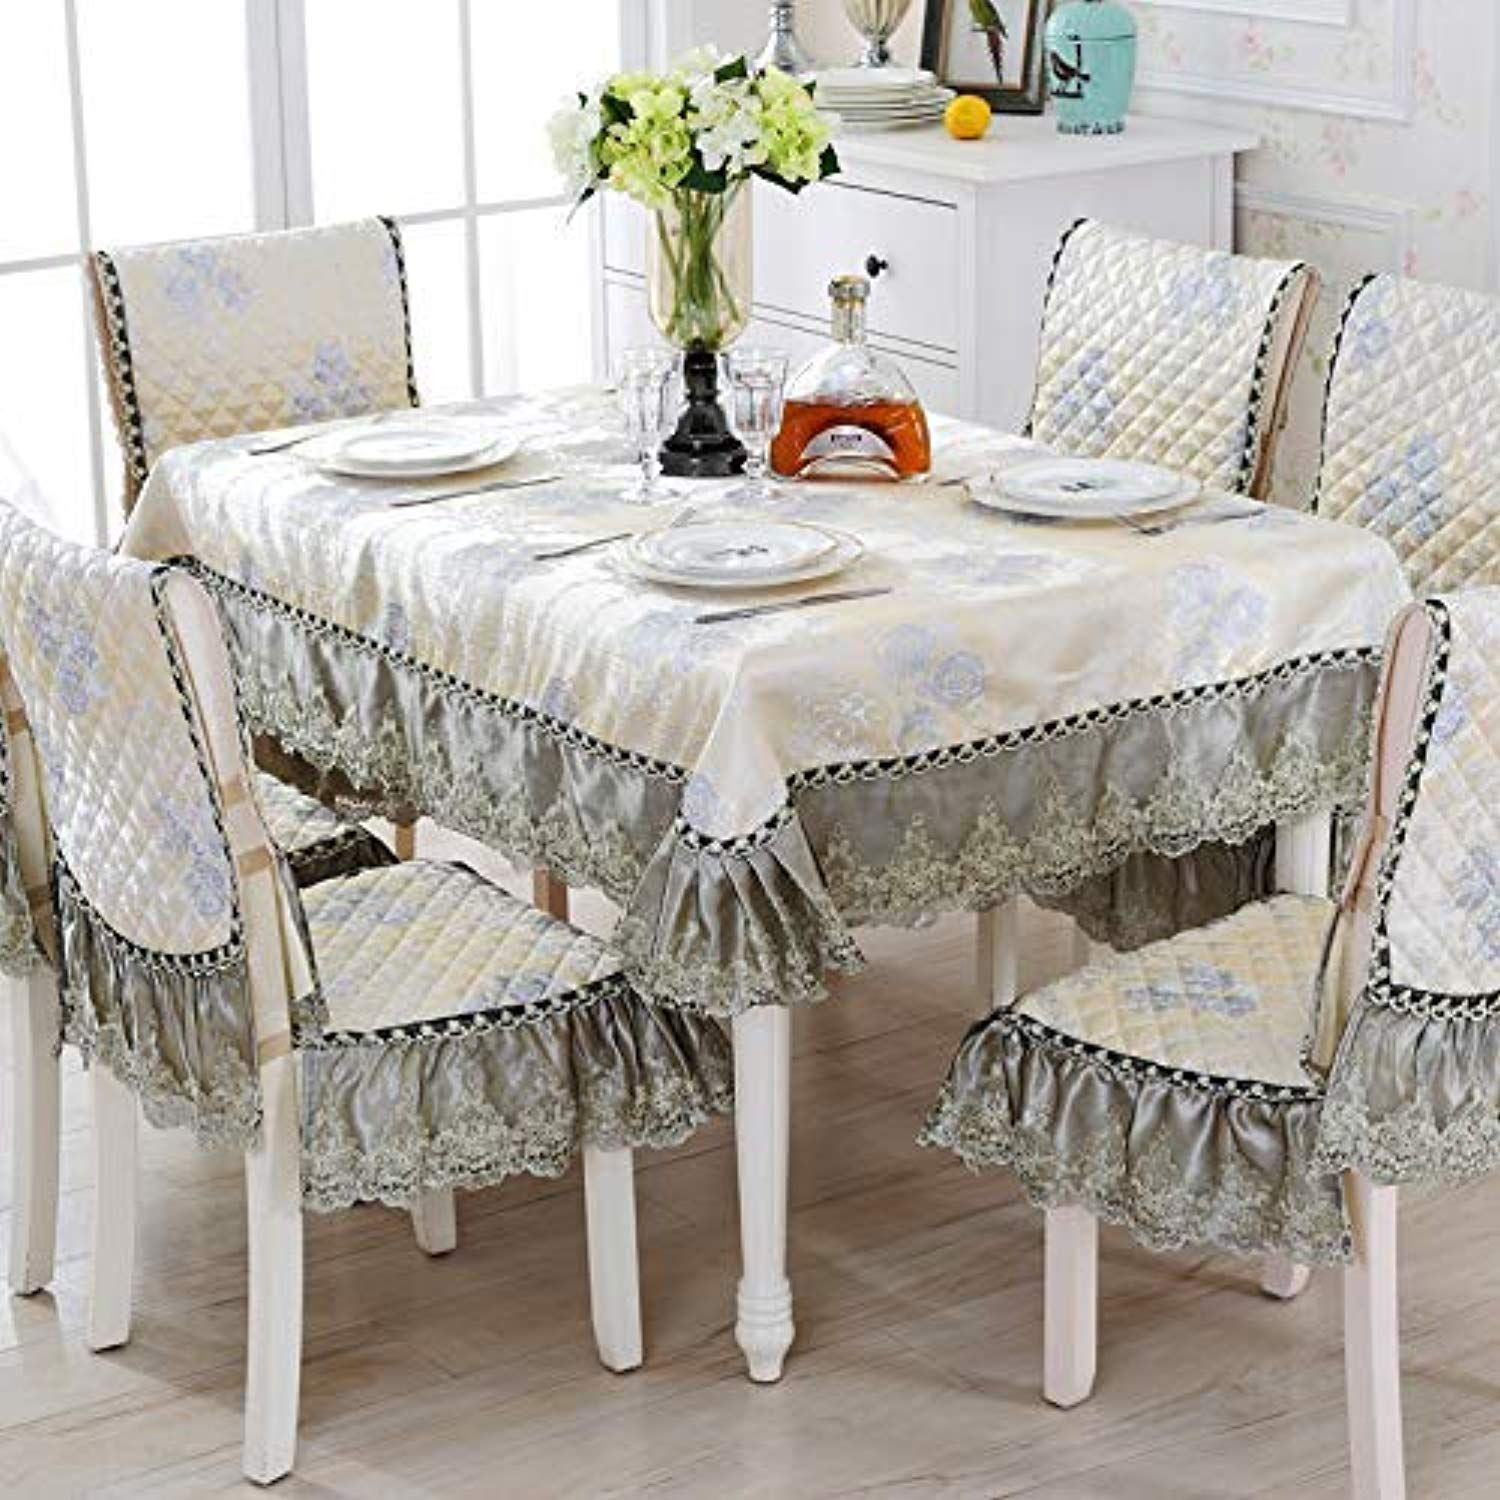 Decorative Waterproof Tablecloths Home Decor Home Coffee Table